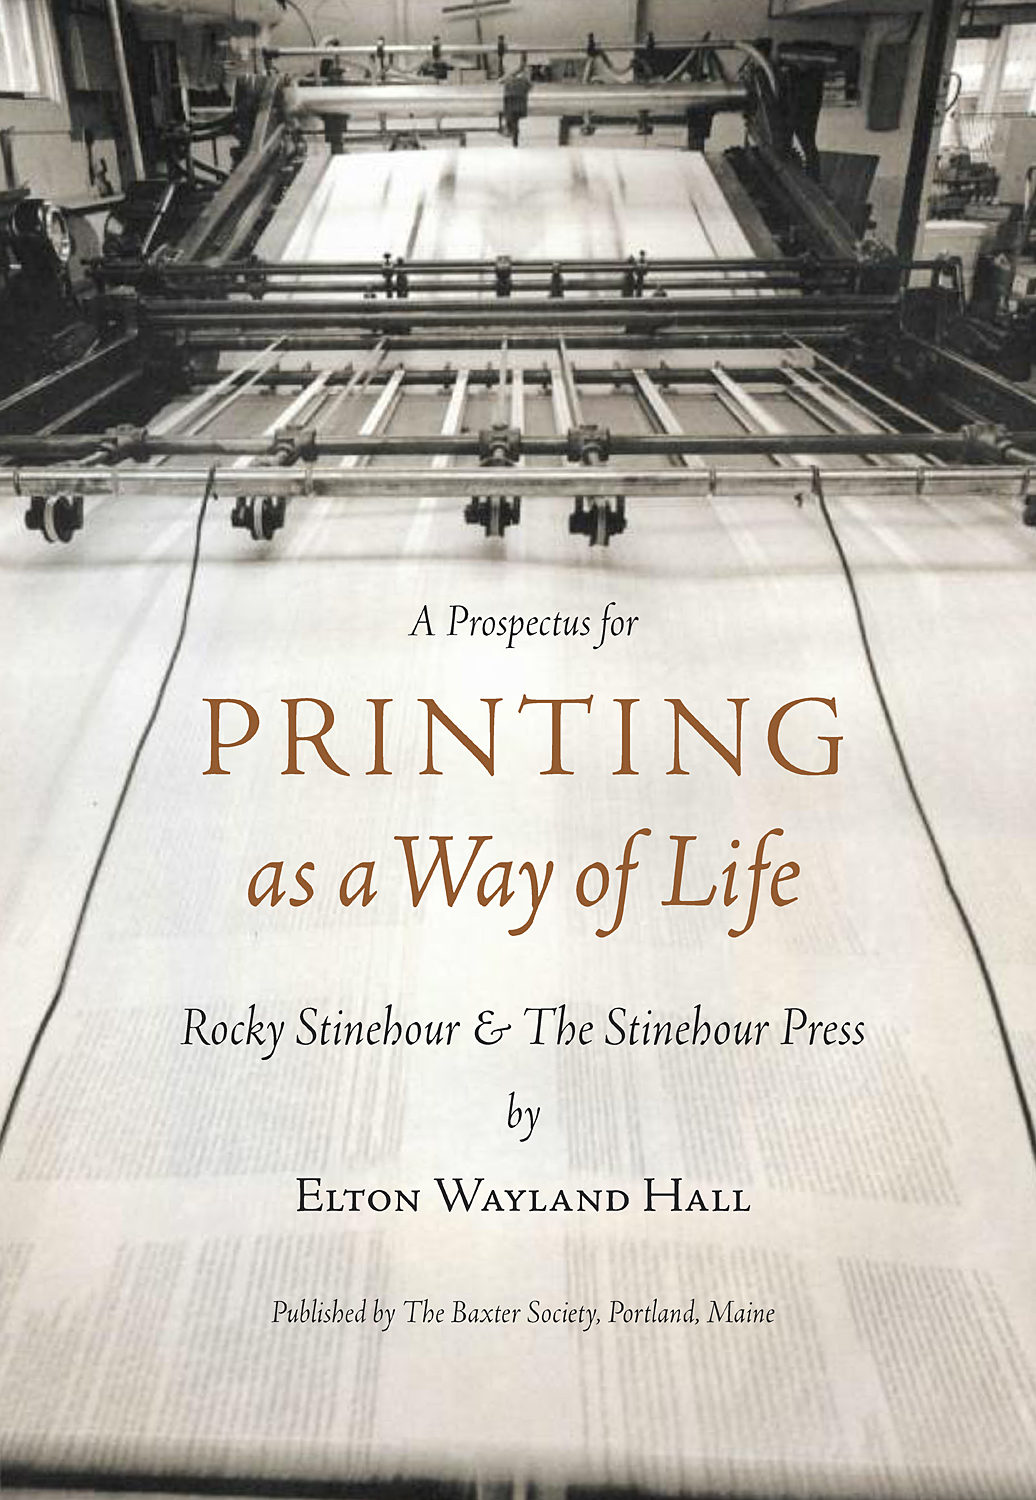 Printing as a Way of Life, Rocky Stinehour & The Stinehour Press by Elton Wayland Hall